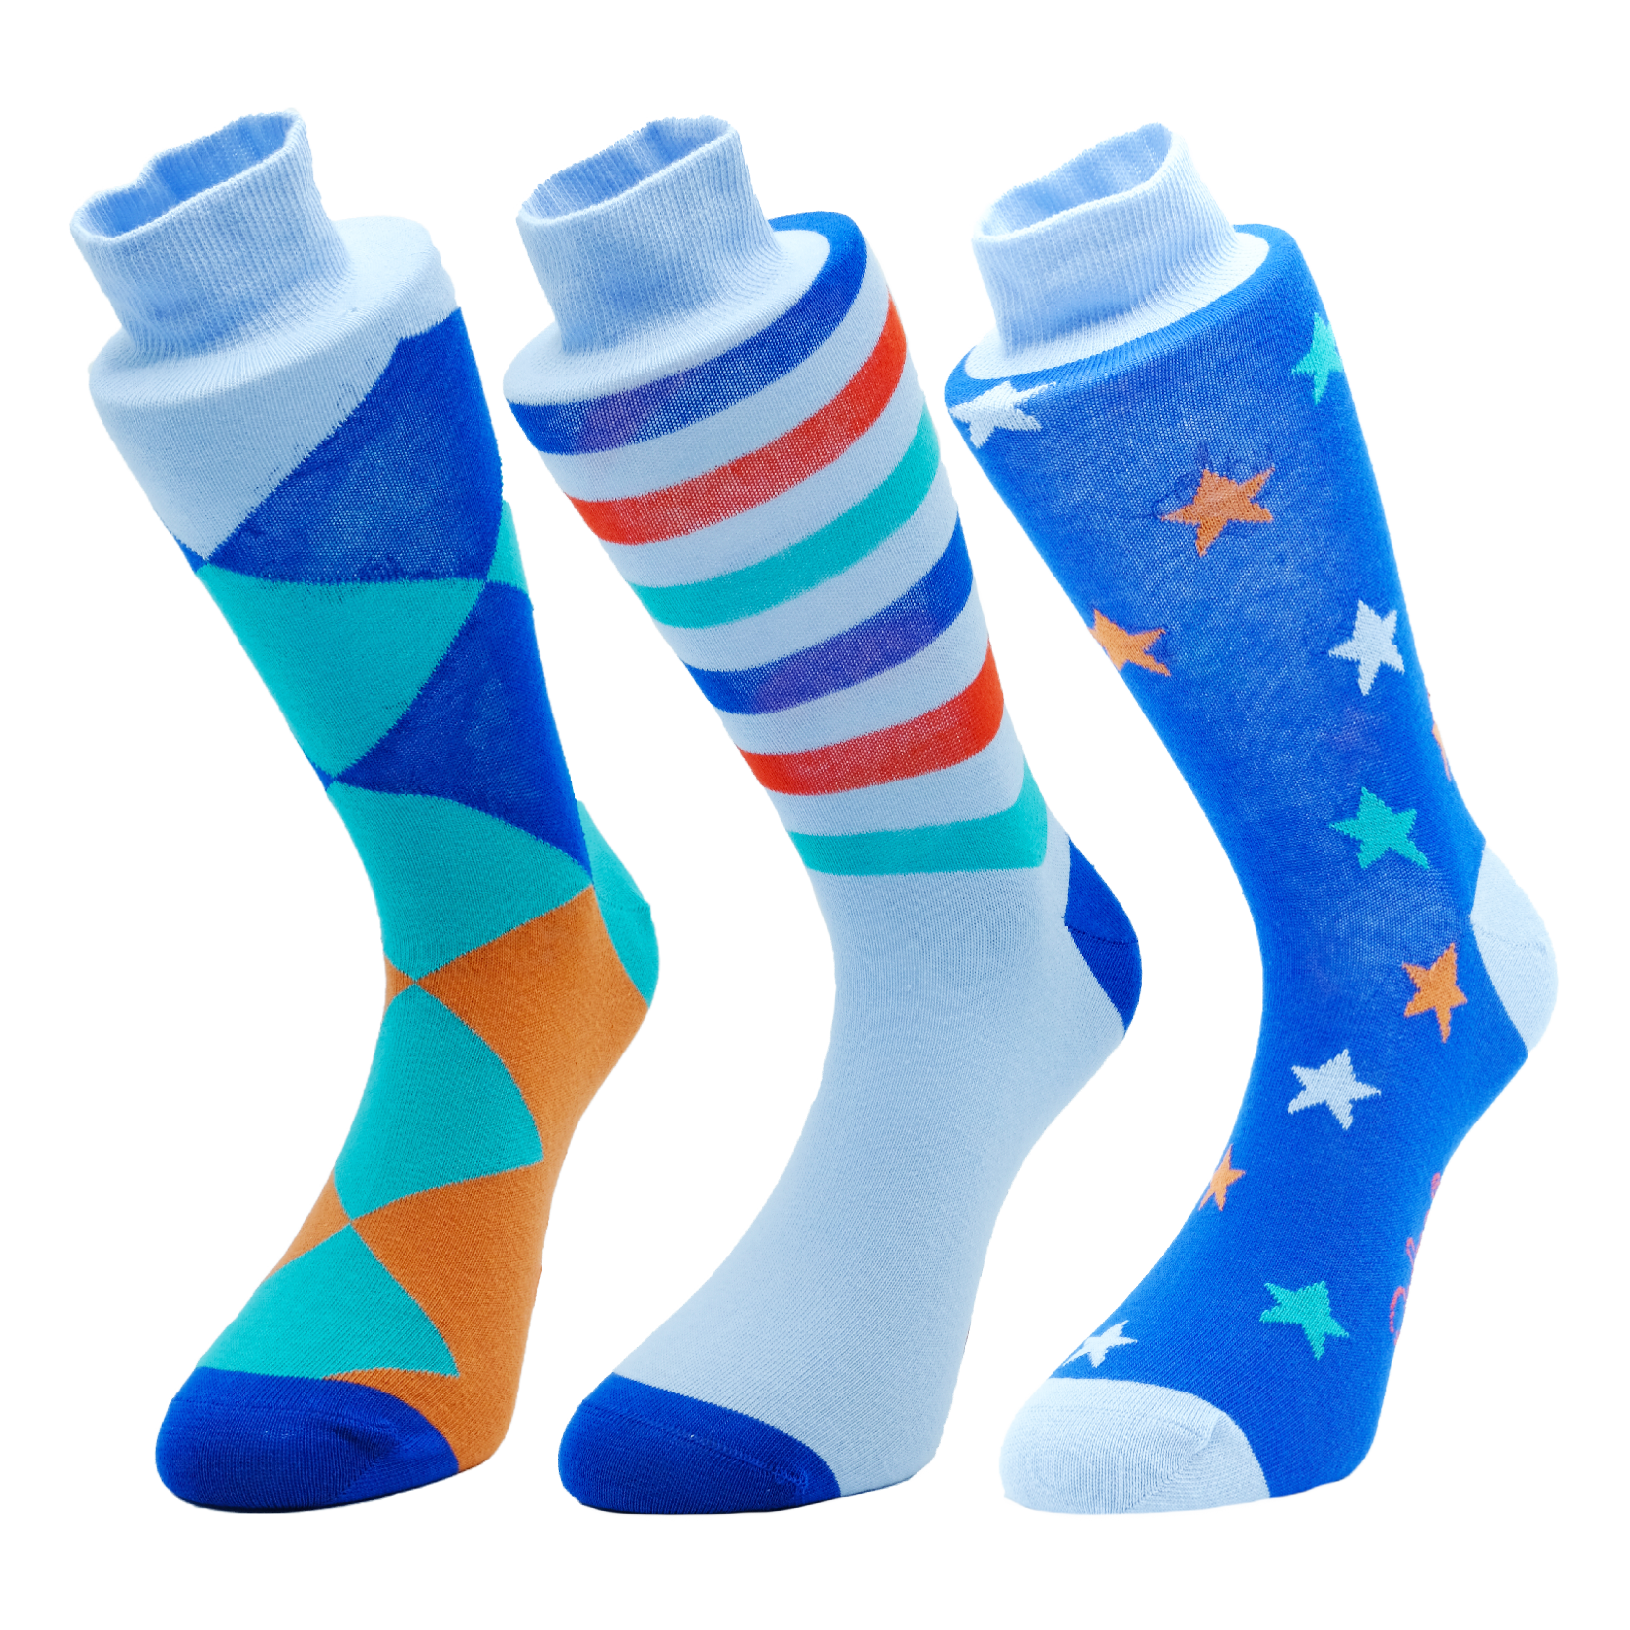 Happy Socks Socken mit Firmenlogo?